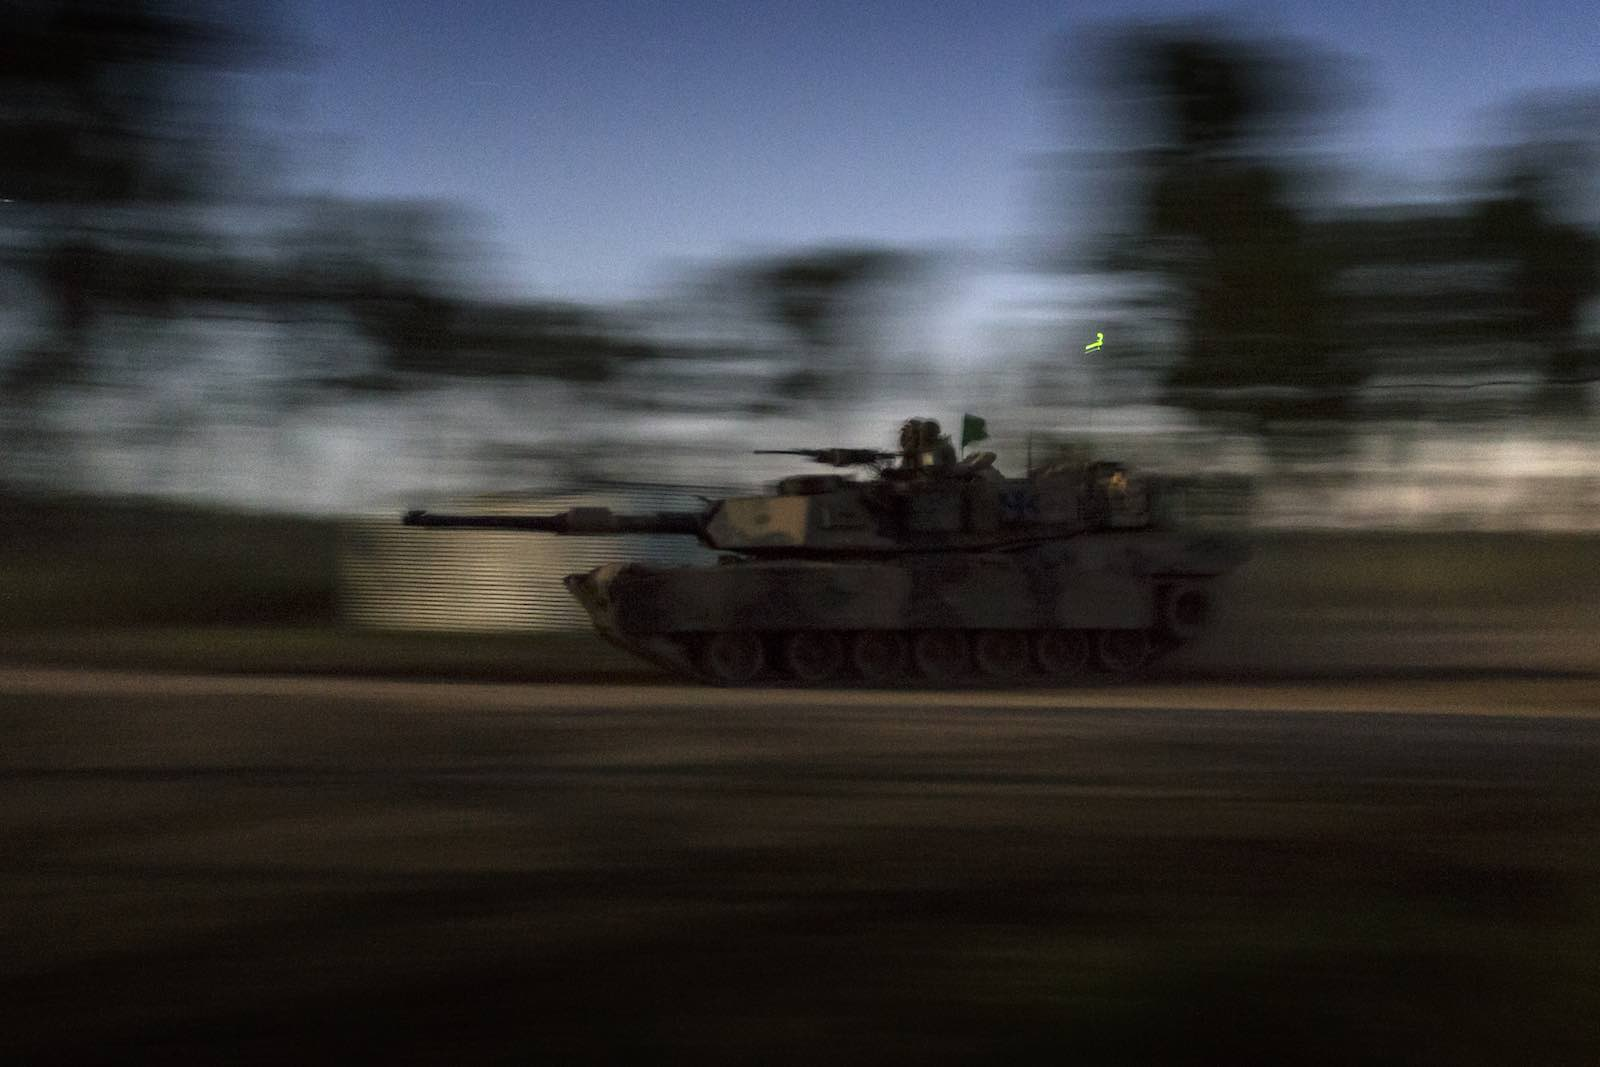 Under a fit-for-purpose assessment, an Abrams tank is clearly overkill for regional peacekeeping operations (Photo: Department of Defence)